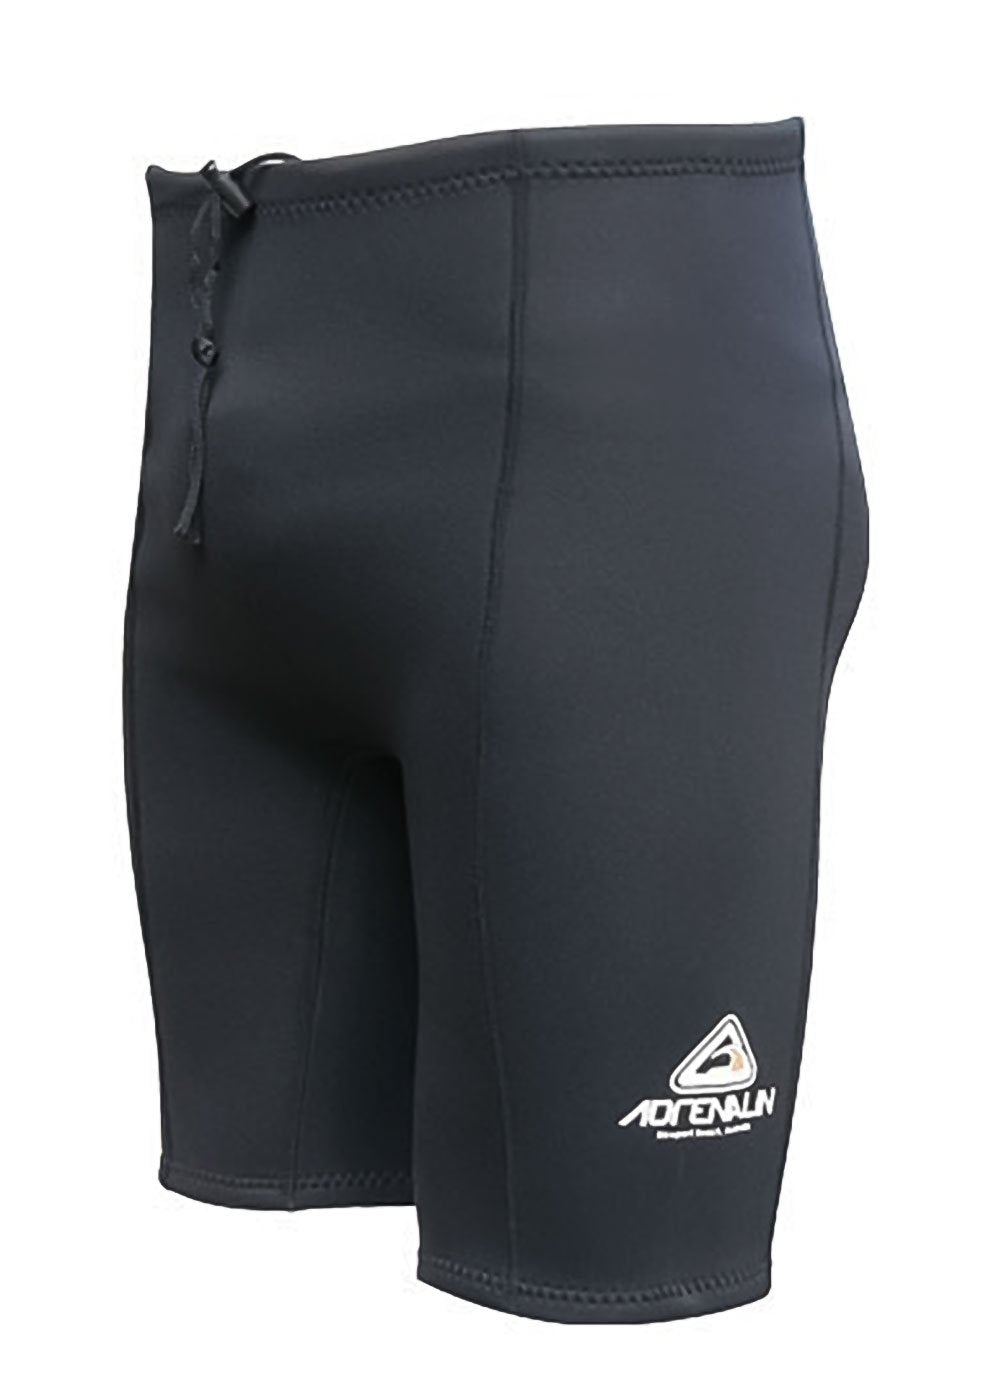 Adrenalin Kids 3mm Neoprene Short